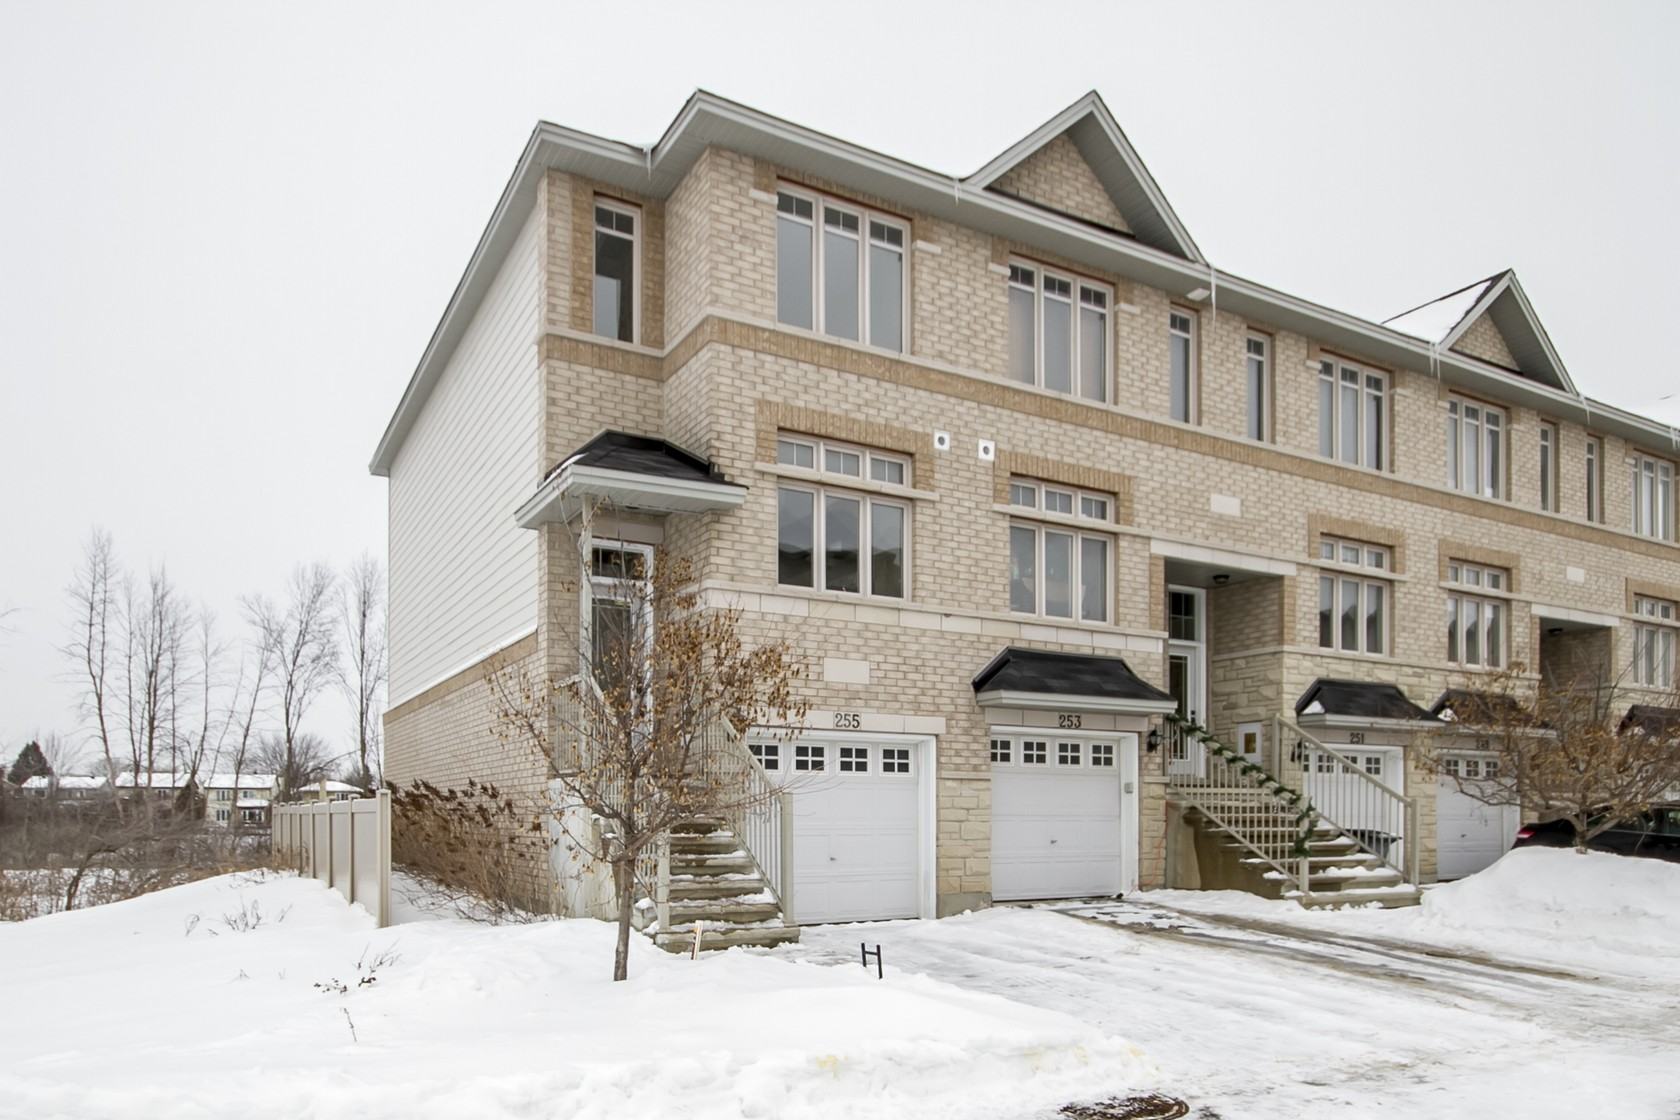 255 Stroget Private, Ottawa, Ontario